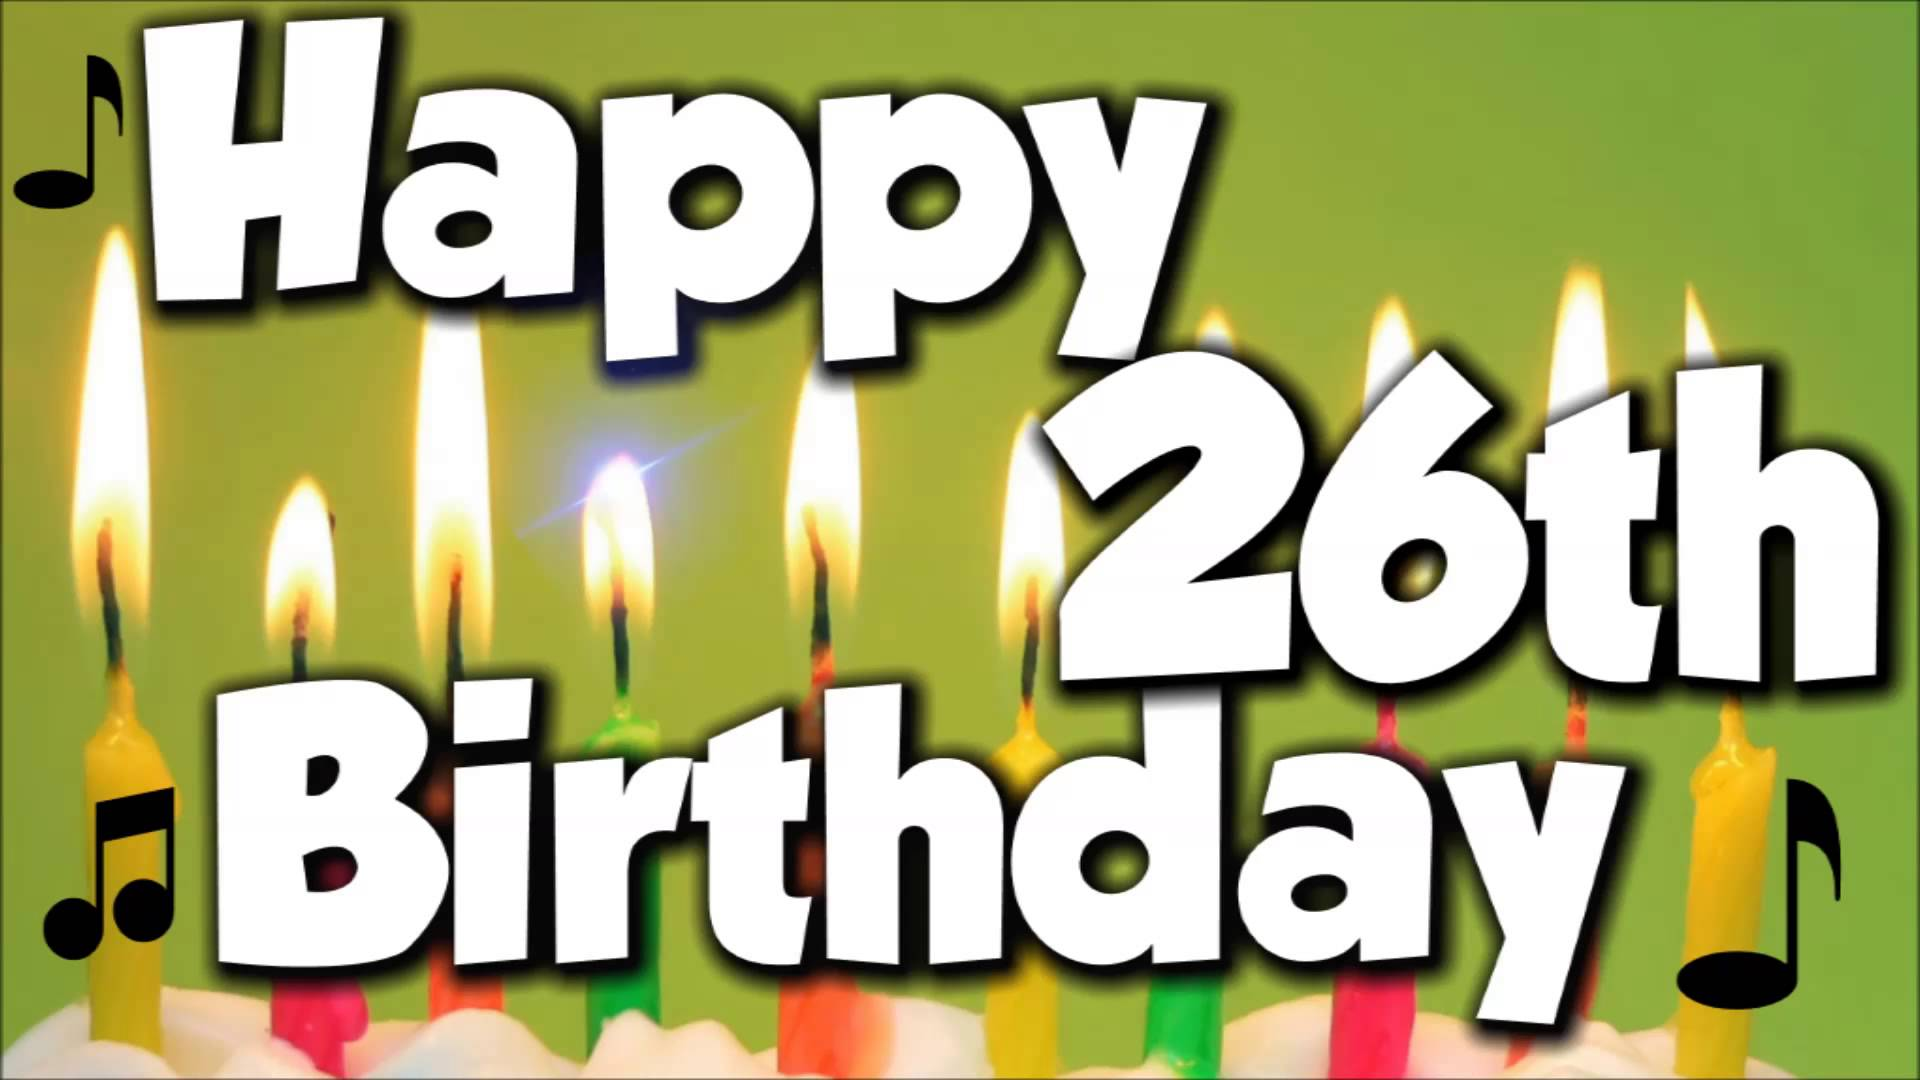 26th birthday wishes poem ; happy-26th-birthday-images-maxresdefault